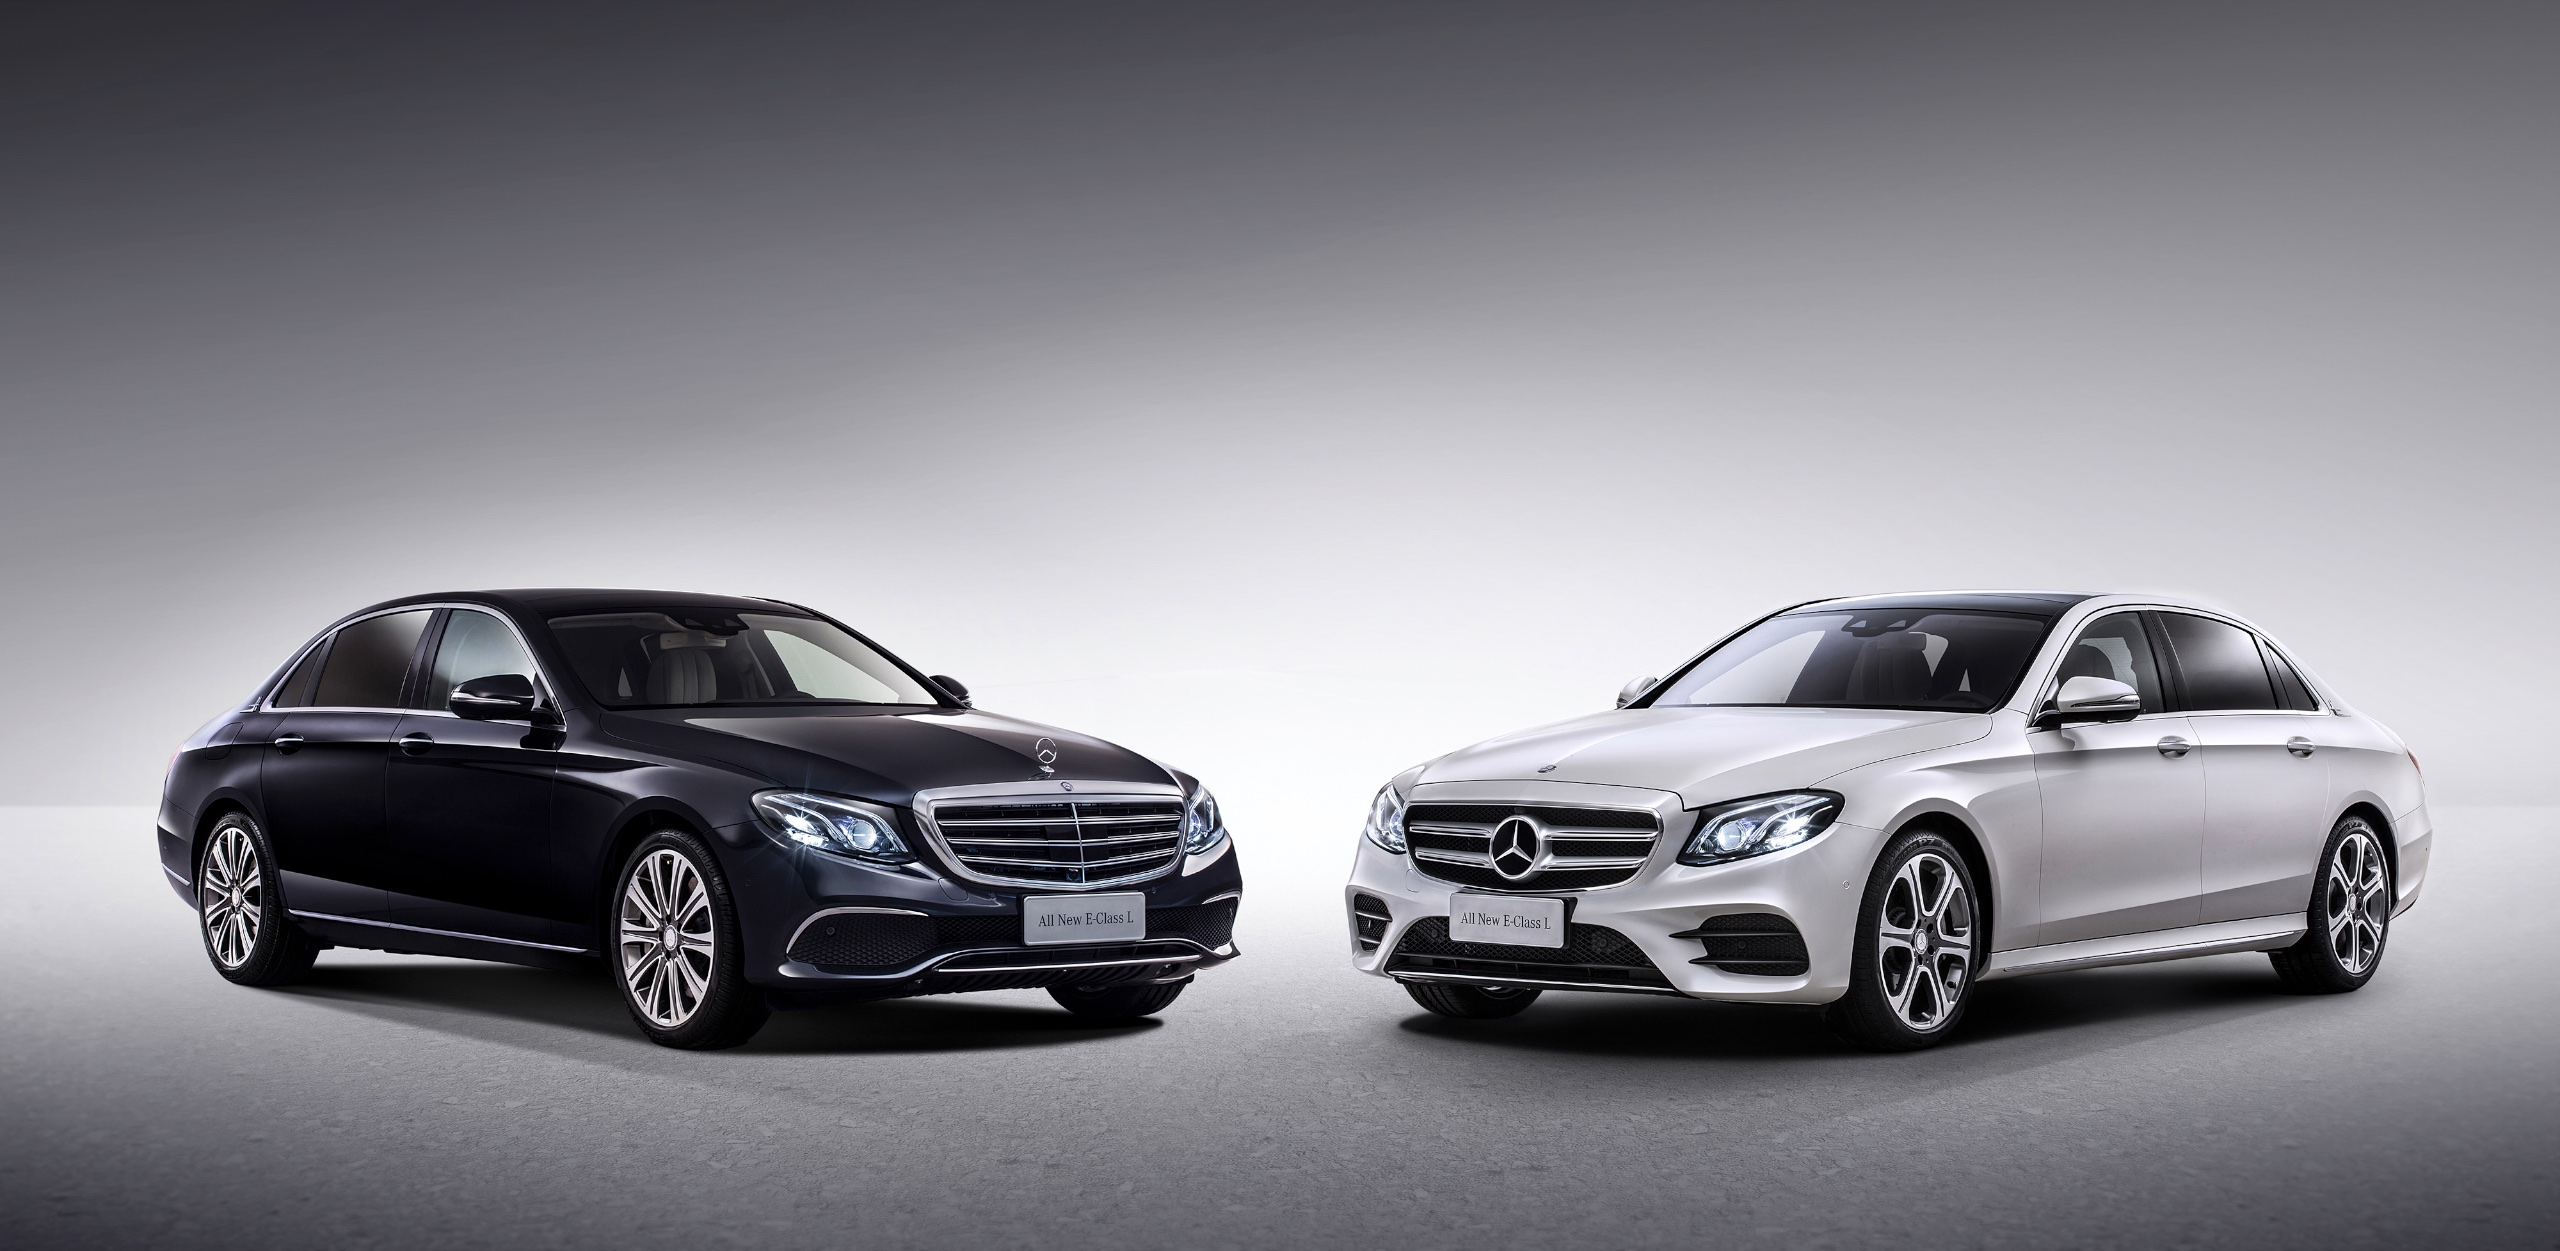 New Mercedes Benz >> V213 Mercedes-Benz E-Class L revealed for China Paul Tan - Image 482673